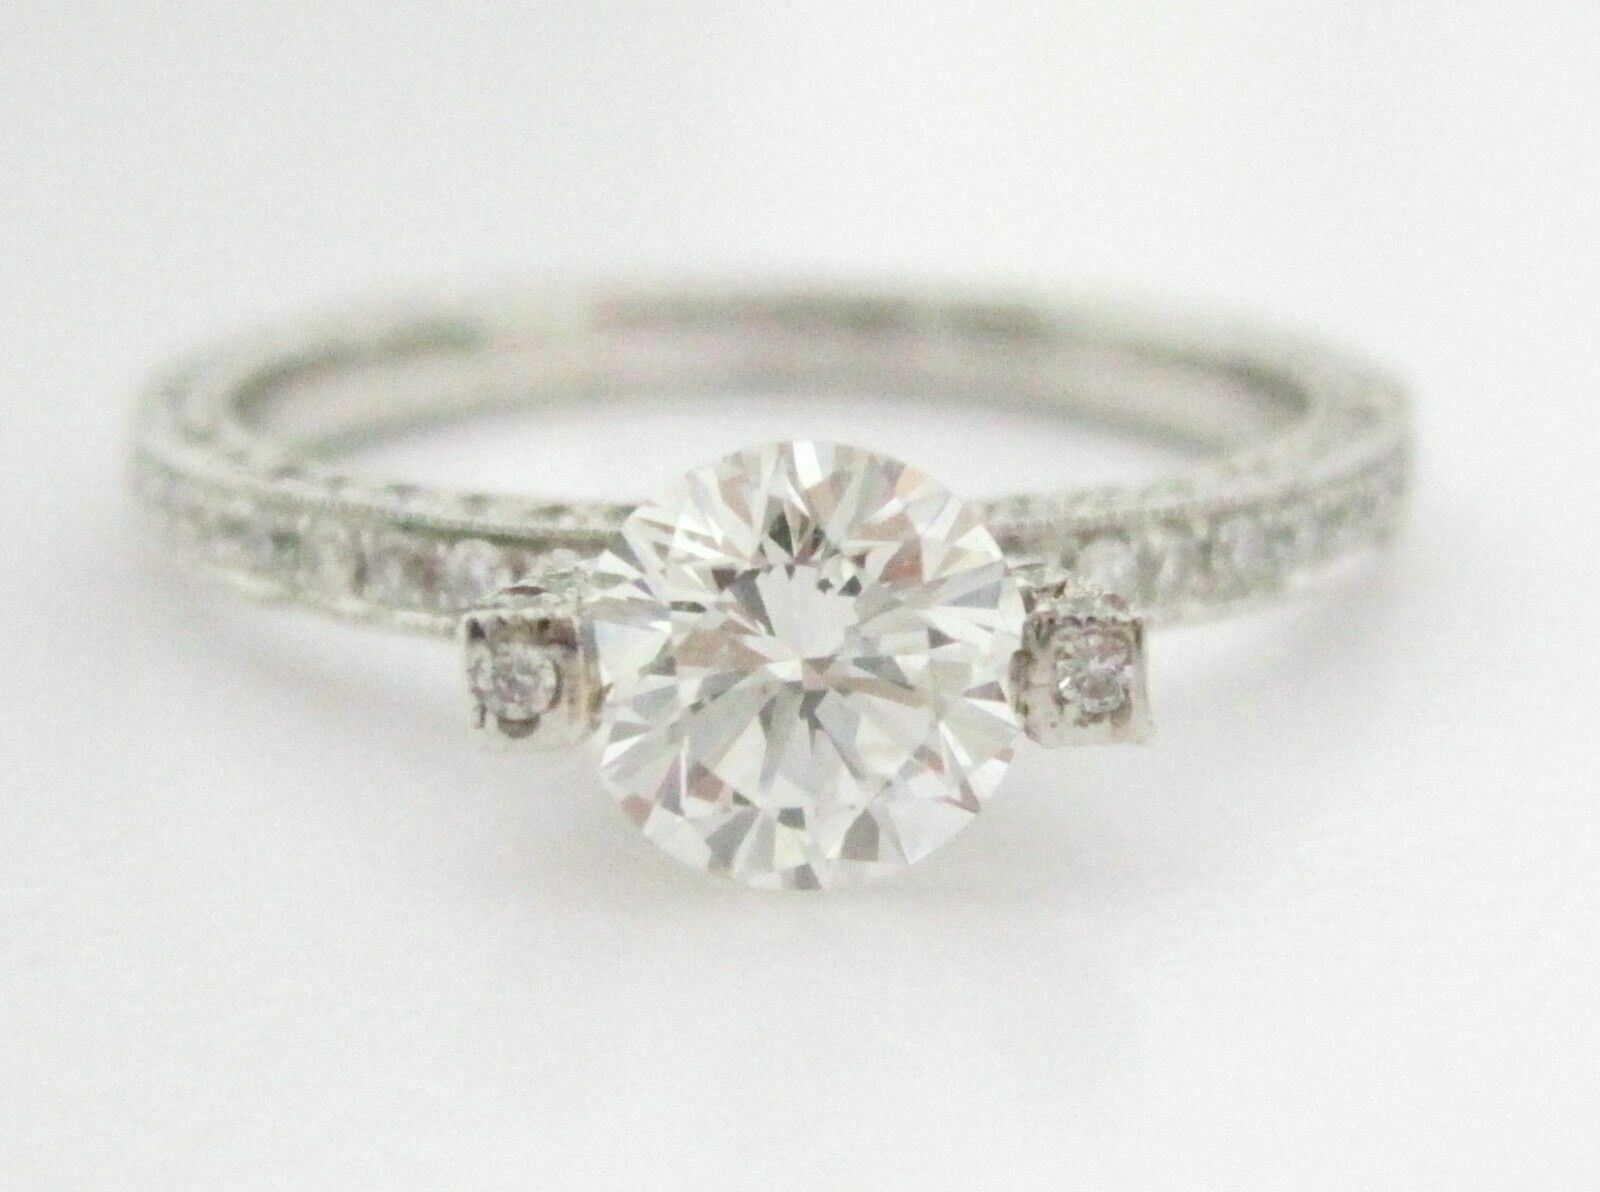 EGL Certified Center .81ct Round Cut Diamond Solitaire Engagement Ring Size 7